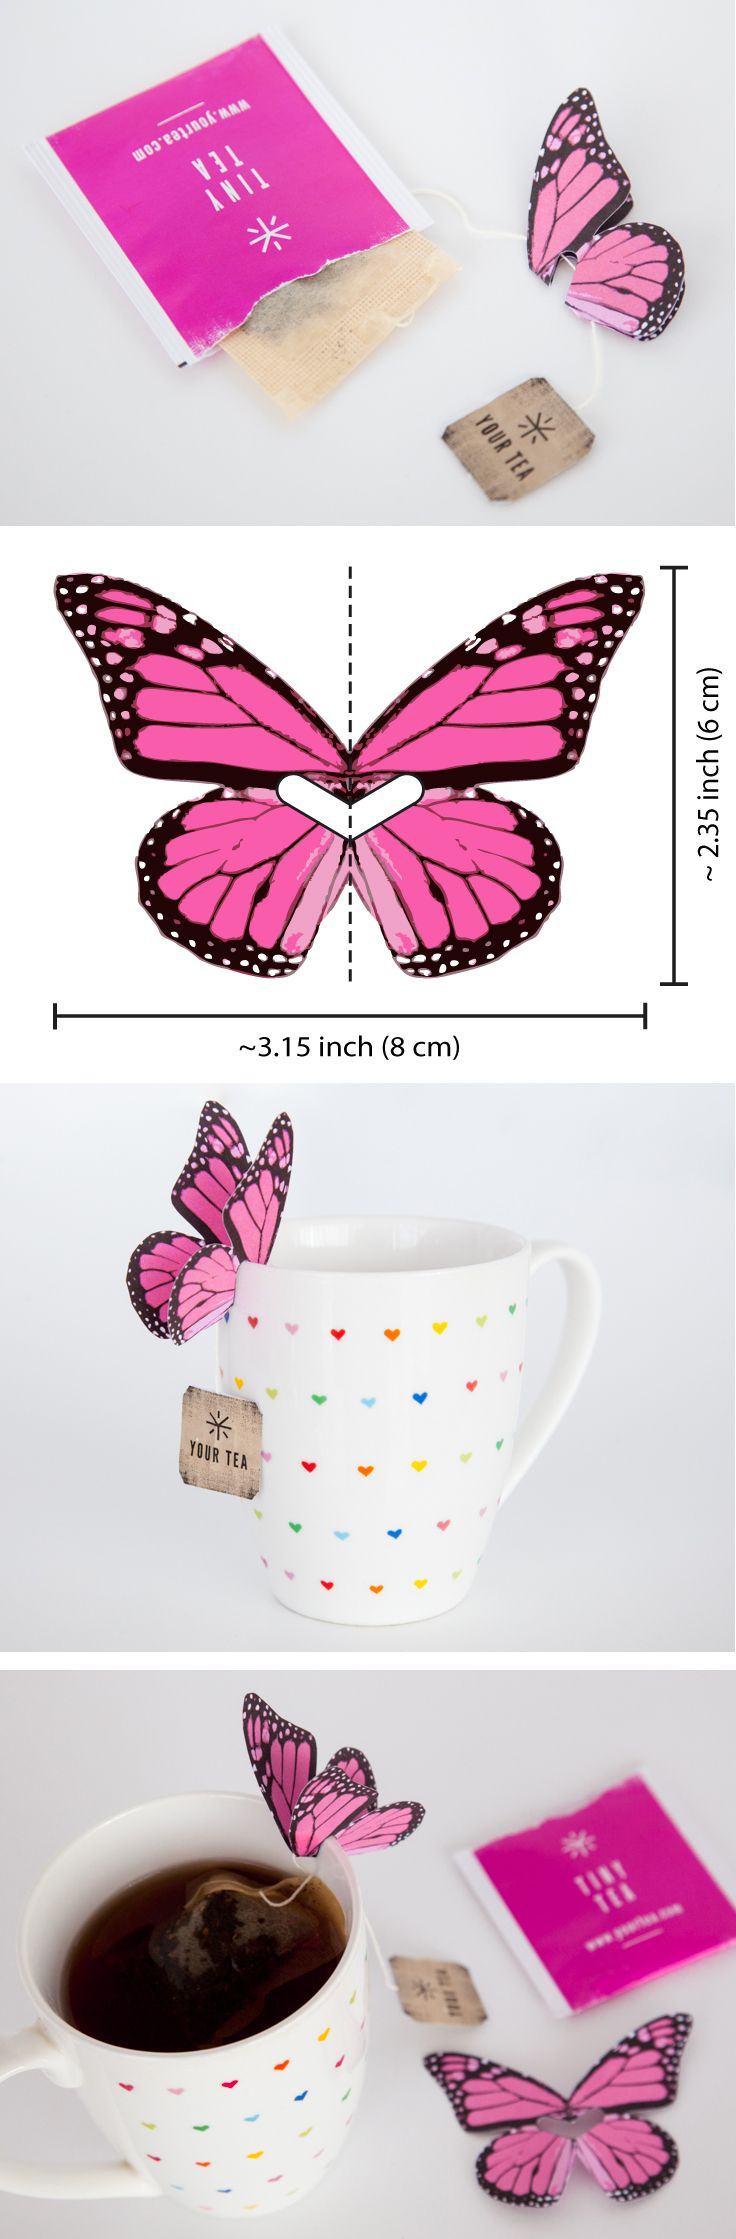 DIY paper butterfly tea bag holder